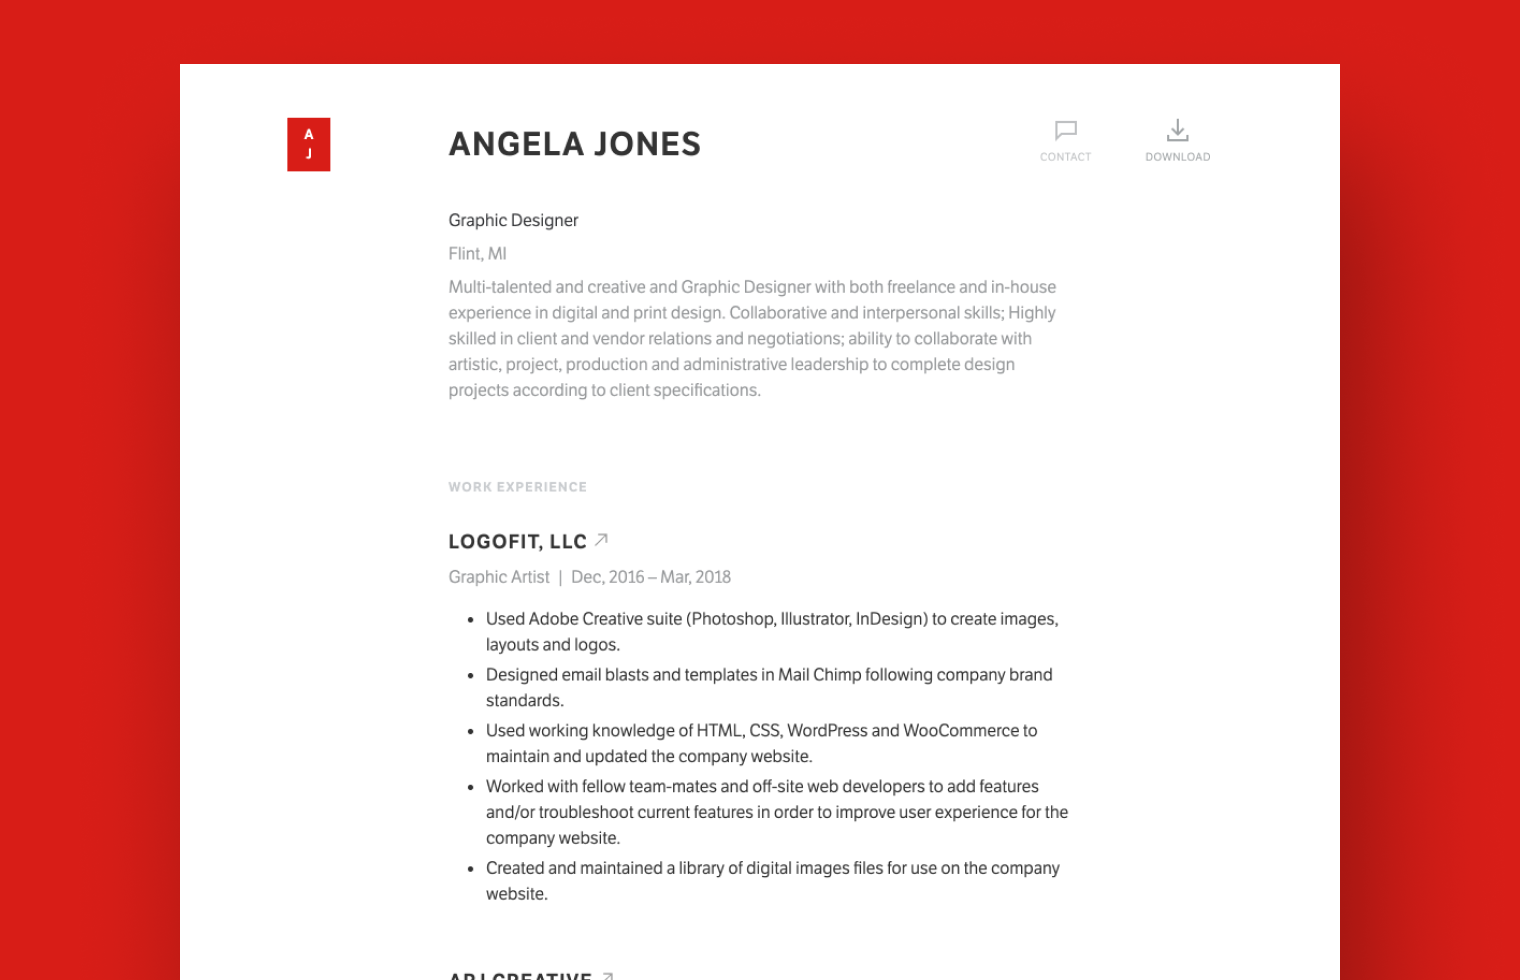 Graphic Designer resume example built with Standard Resume